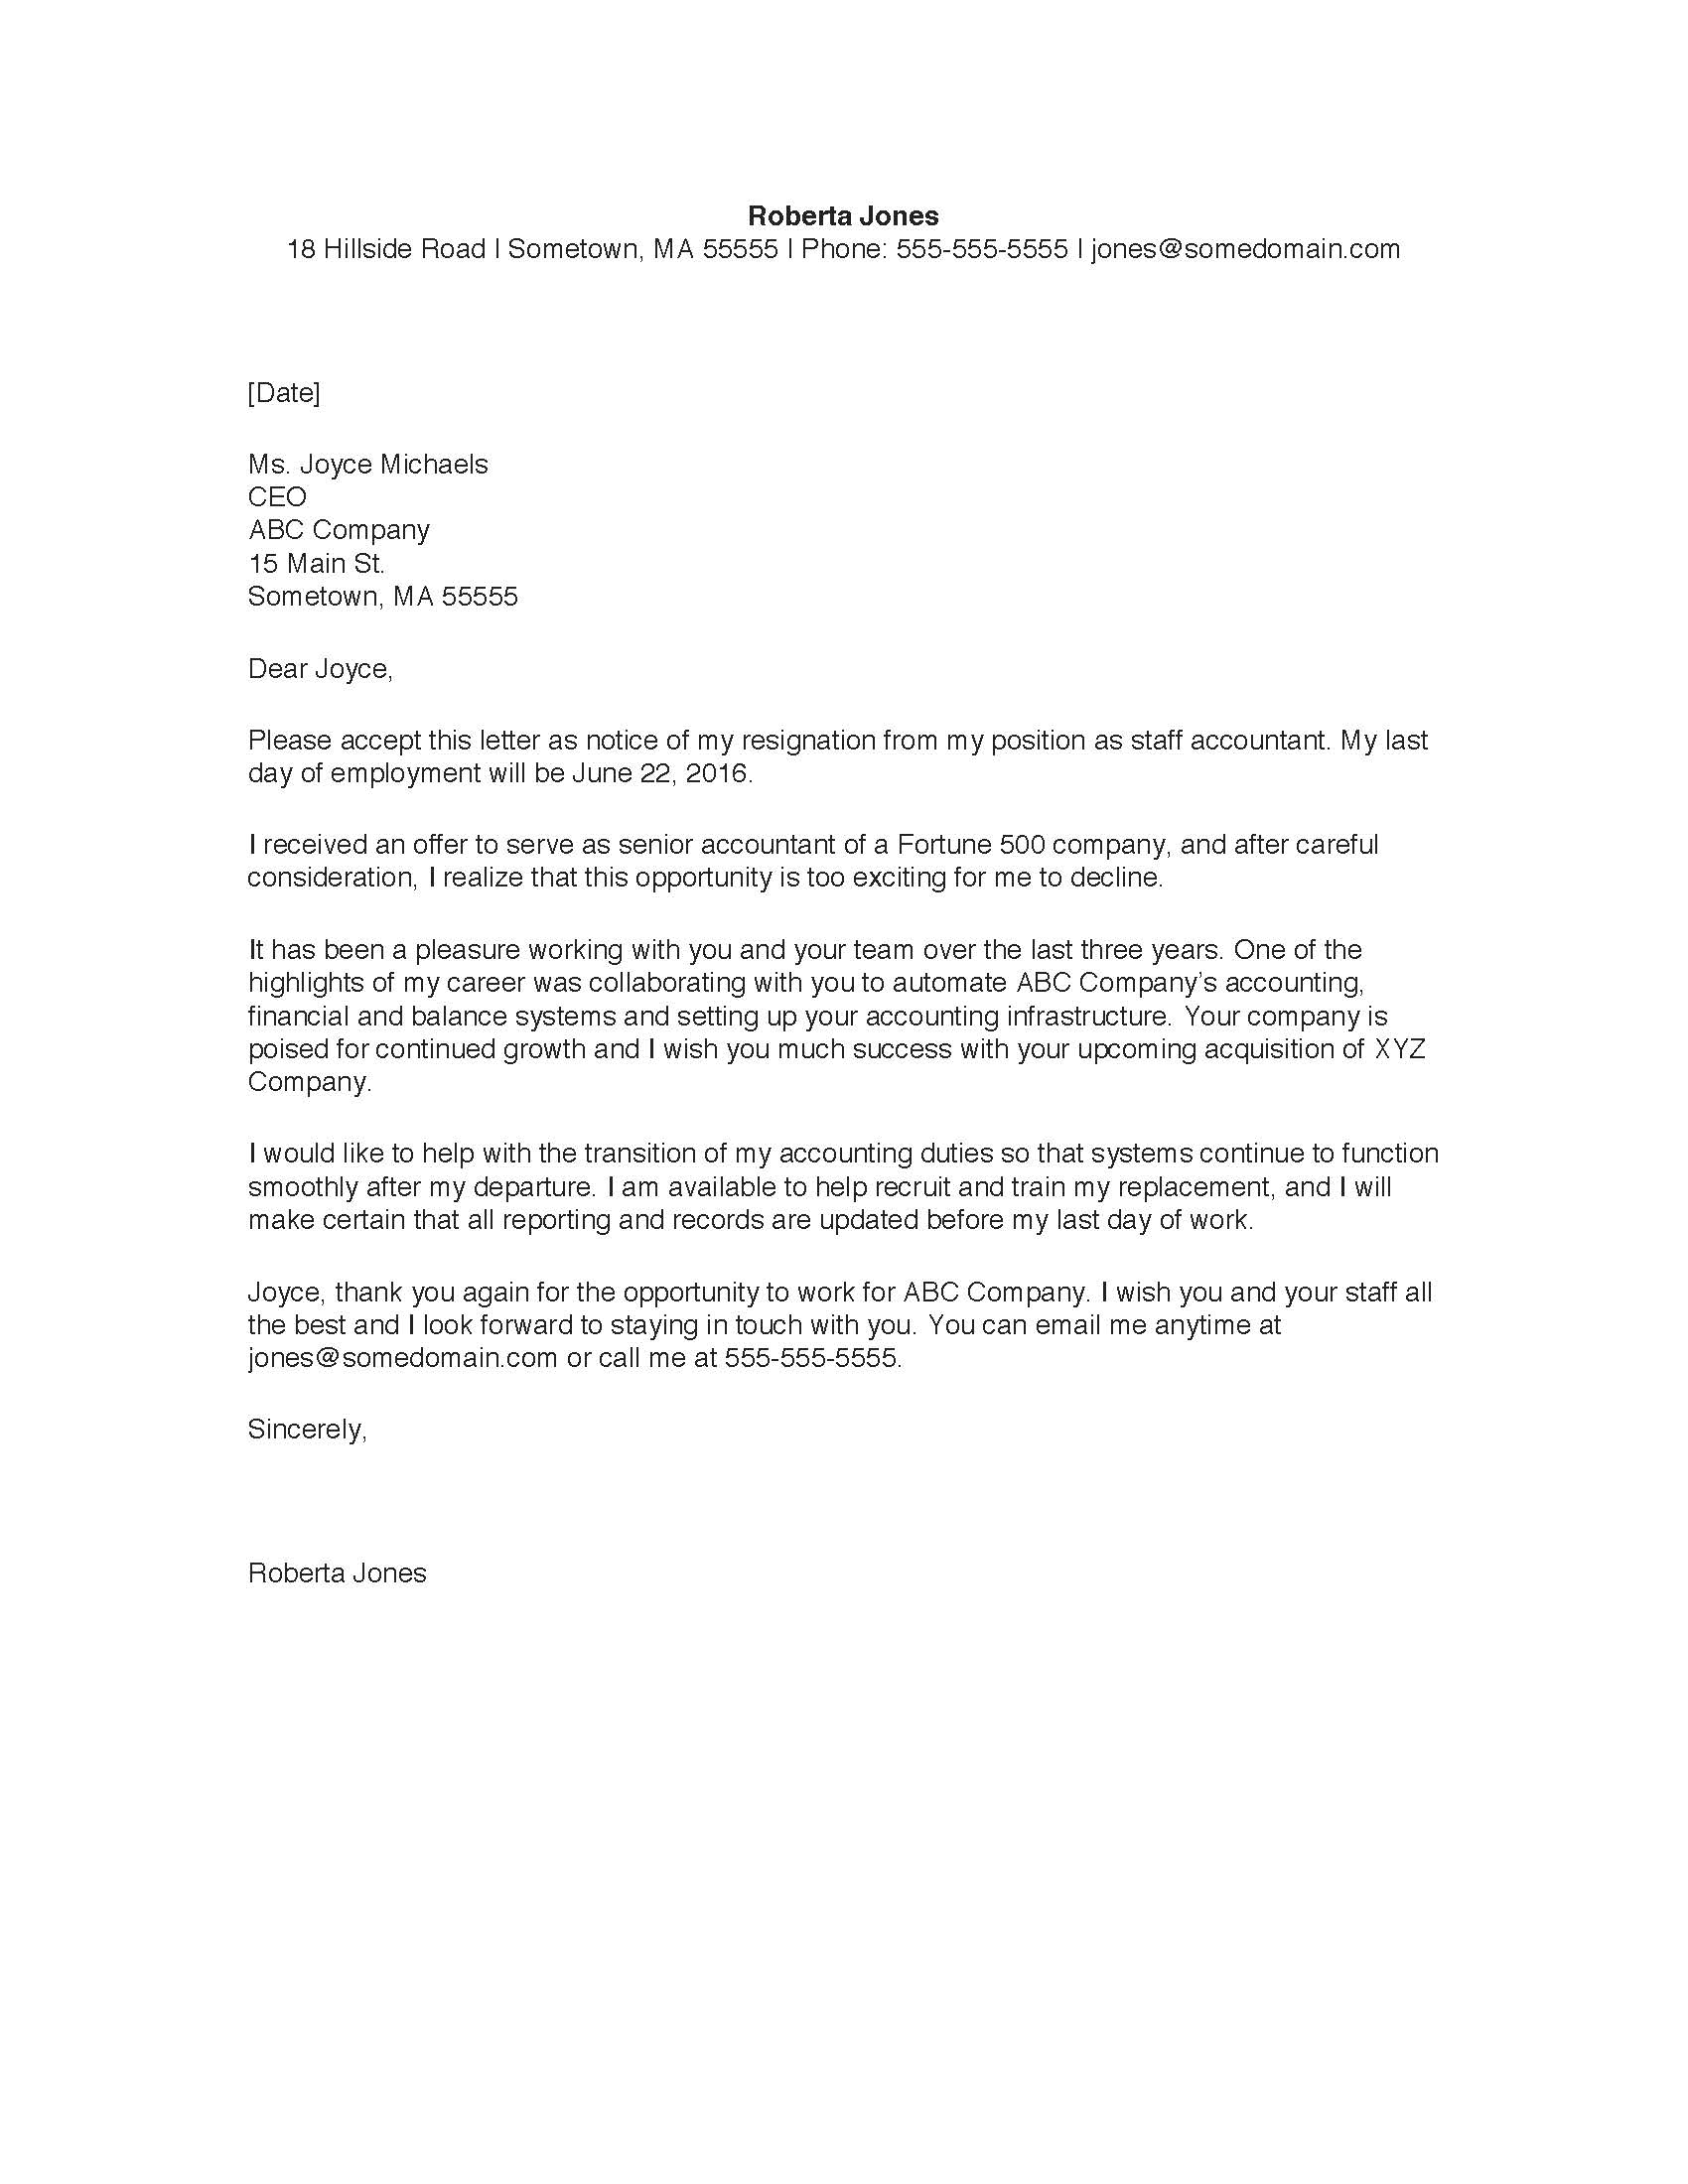 Sample resignation letter monster sample resignation letter altavistaventures Images